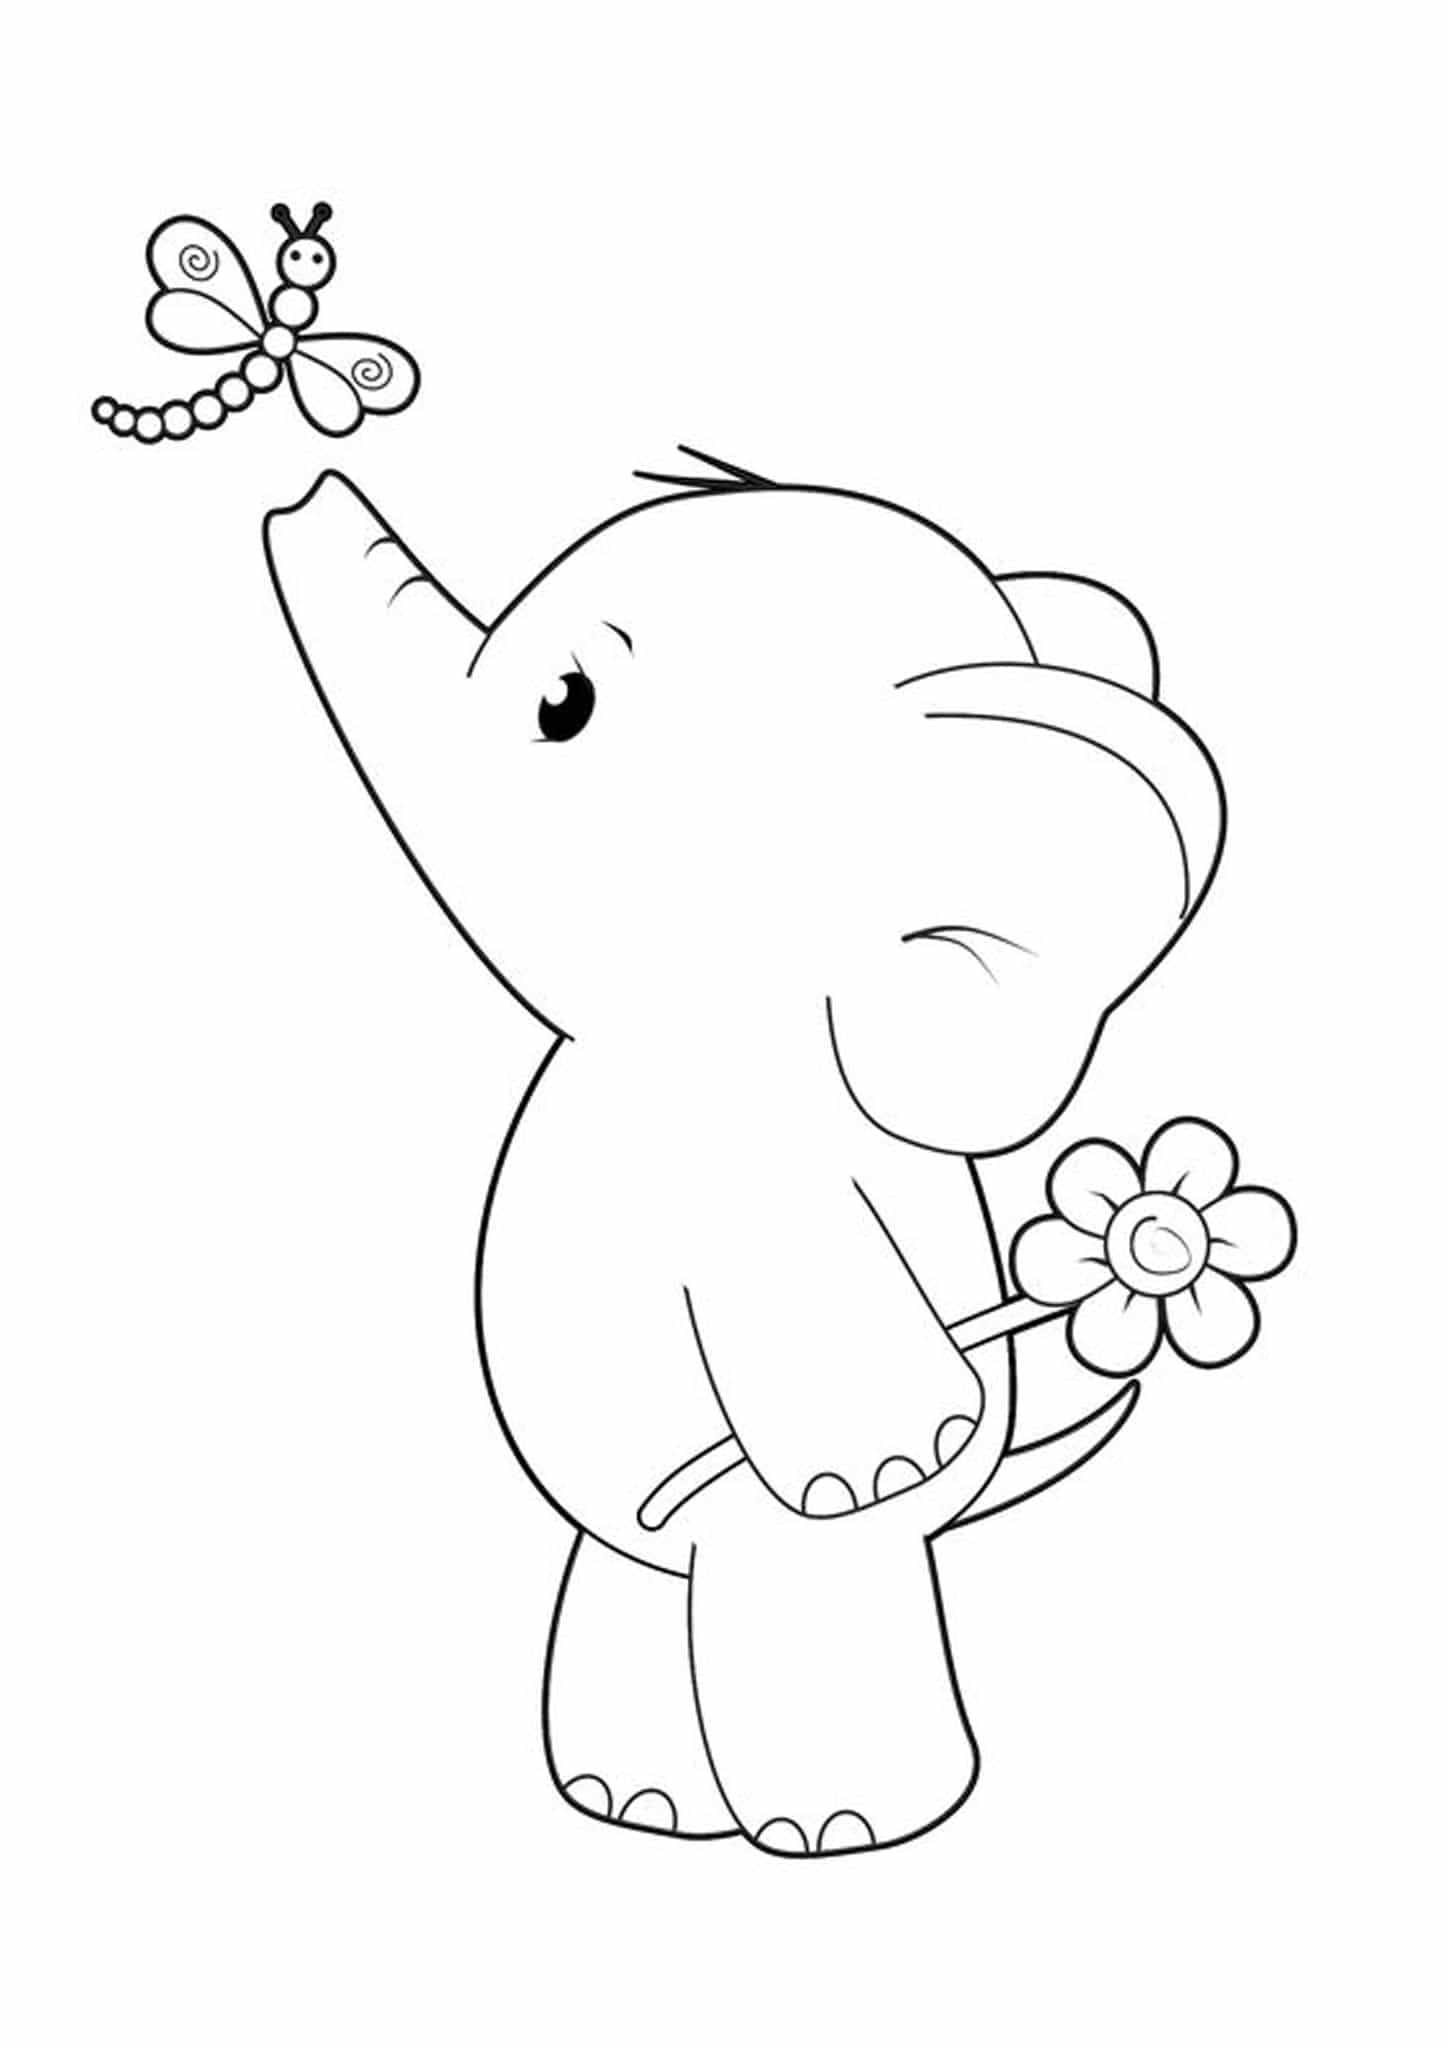 LPS Popular Coloring Pages - GetColoringPages.com | 2048x1448